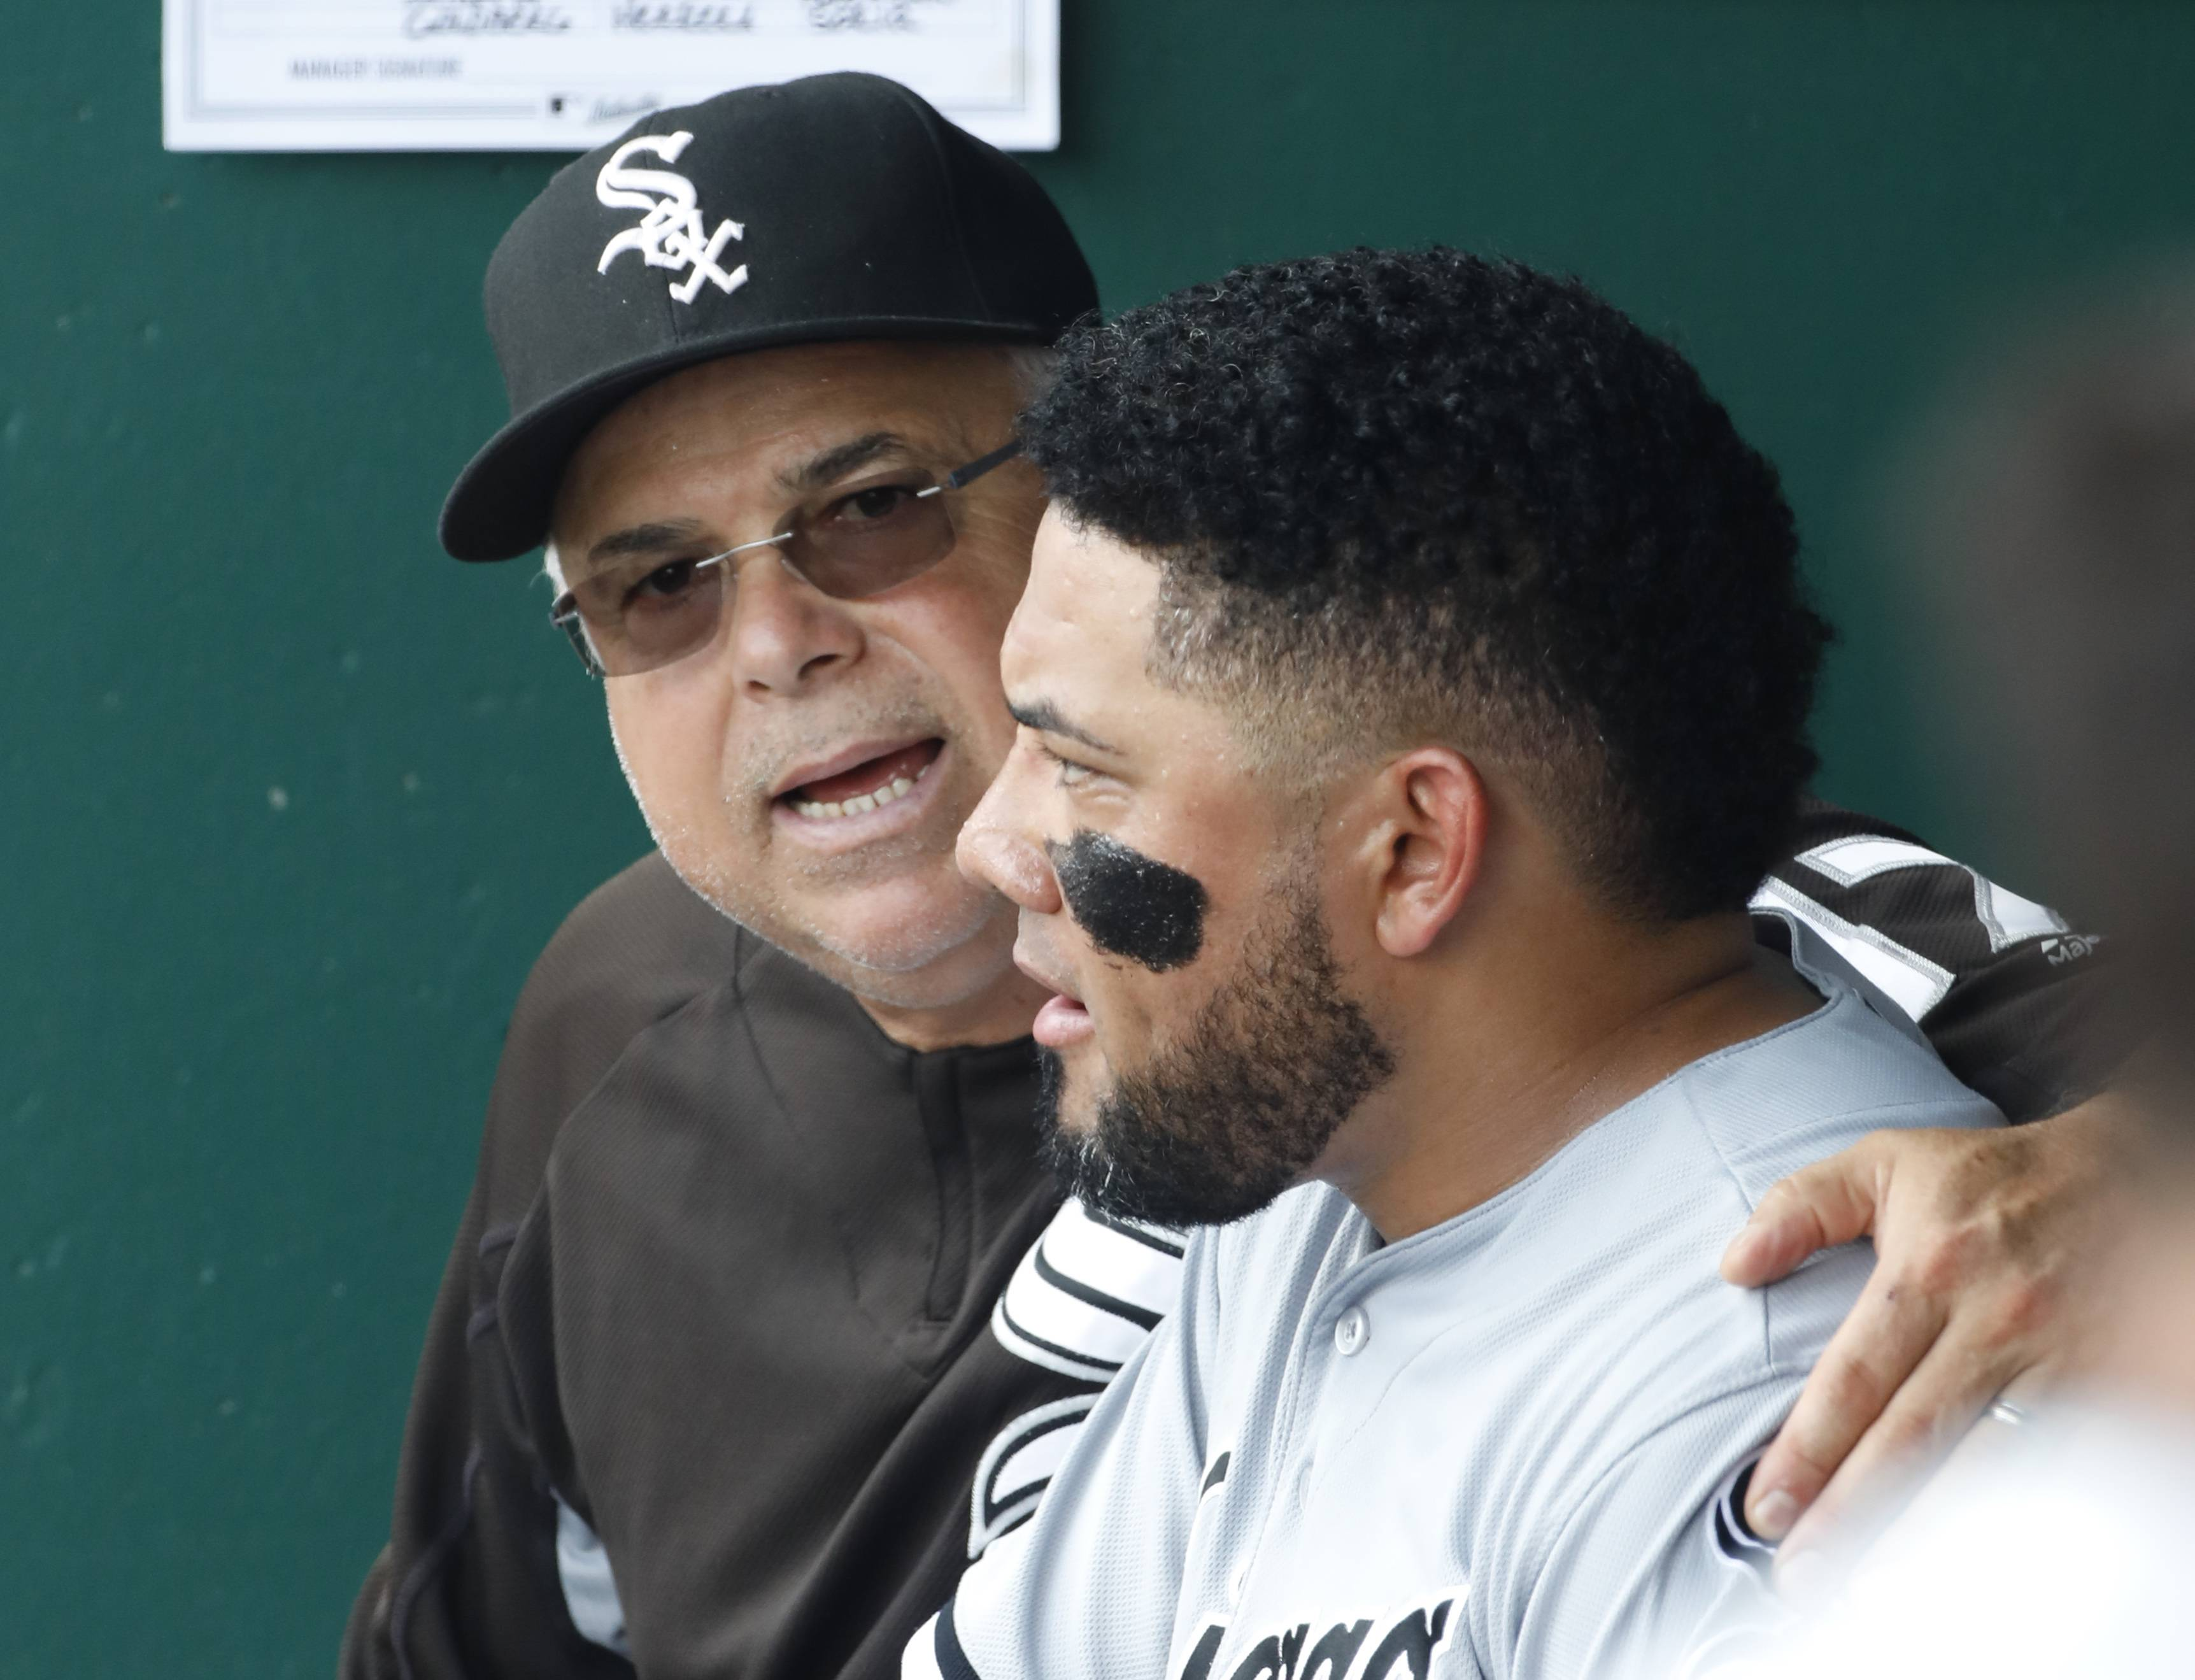 Chicago White Sox manager Rick Renteria, left, talks with Melky Cabrera, right, in the dugout between innings of their team's baseball game against Kansas City Royals at Kauffman Stadium in Kansas City, Mo., Sunday, July 23, 2017.